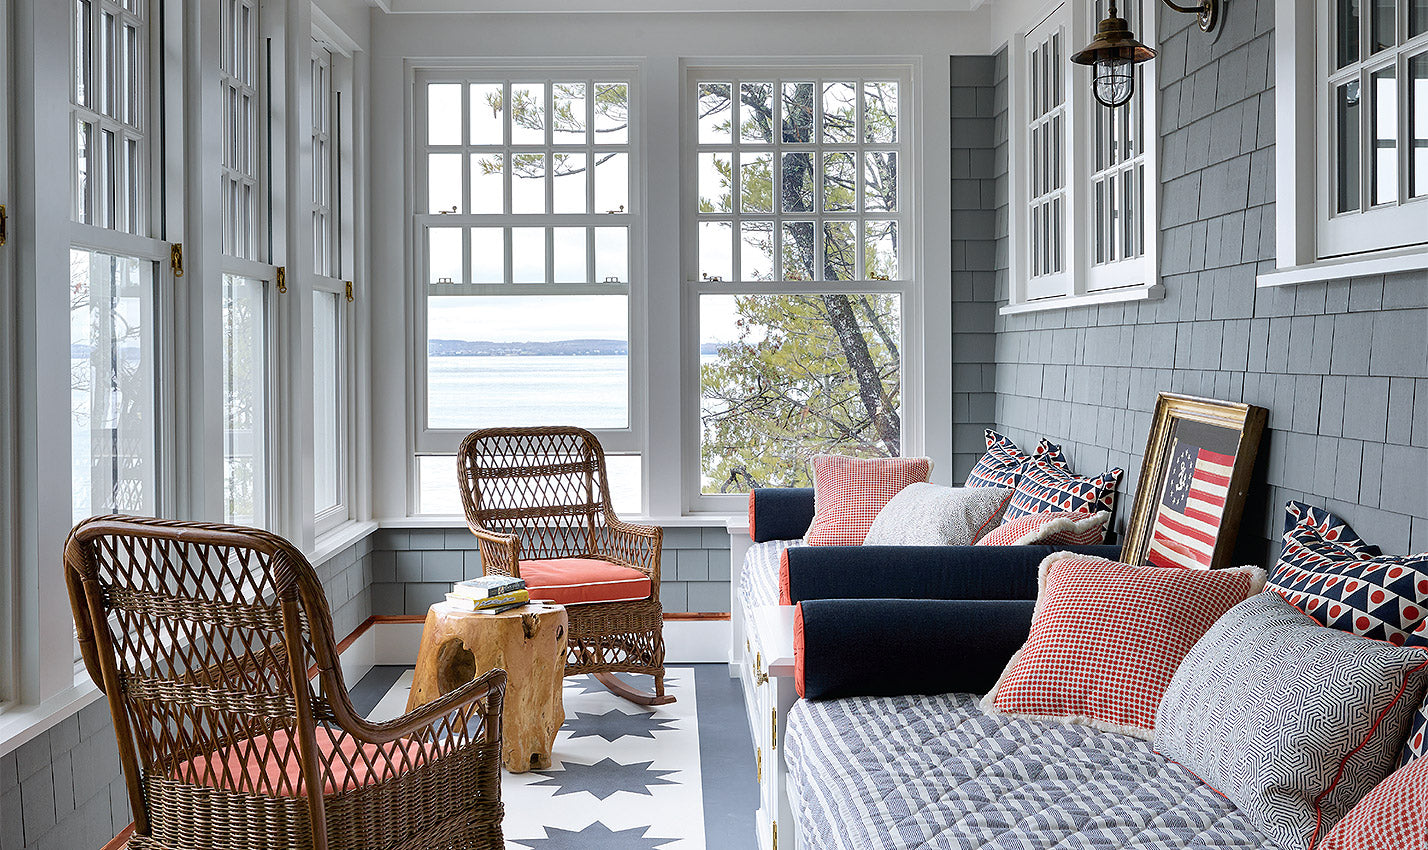 An American-flag themed patio/Photographer: Richard Powers/Designer Frank Ponterio's Lake Michigan vacation home design puts the outdoors first.